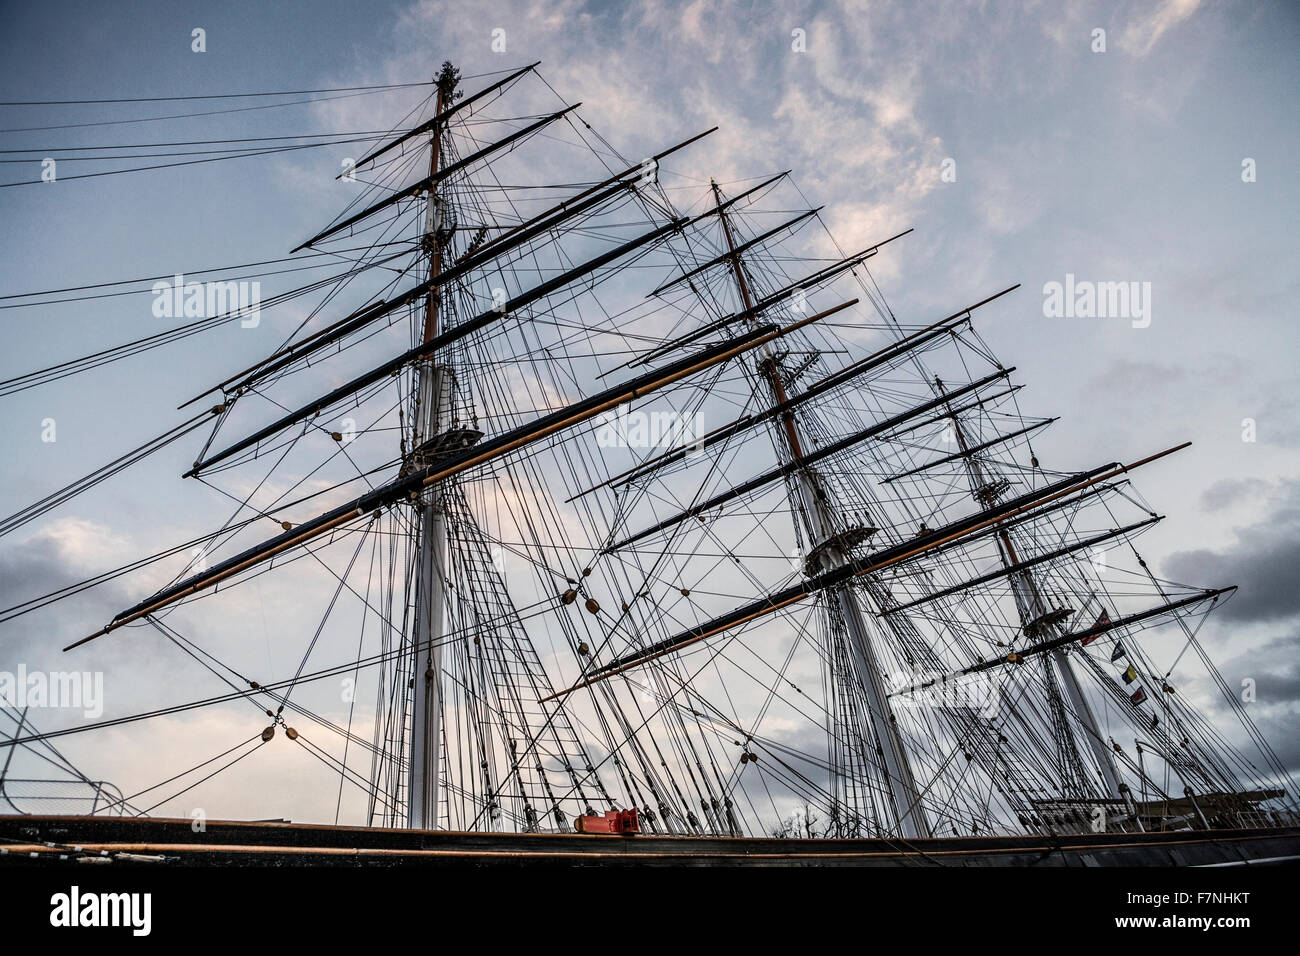 Cutty Sark, Greenwich, London, England, UK. The ships masts and rigging. - Stock Image